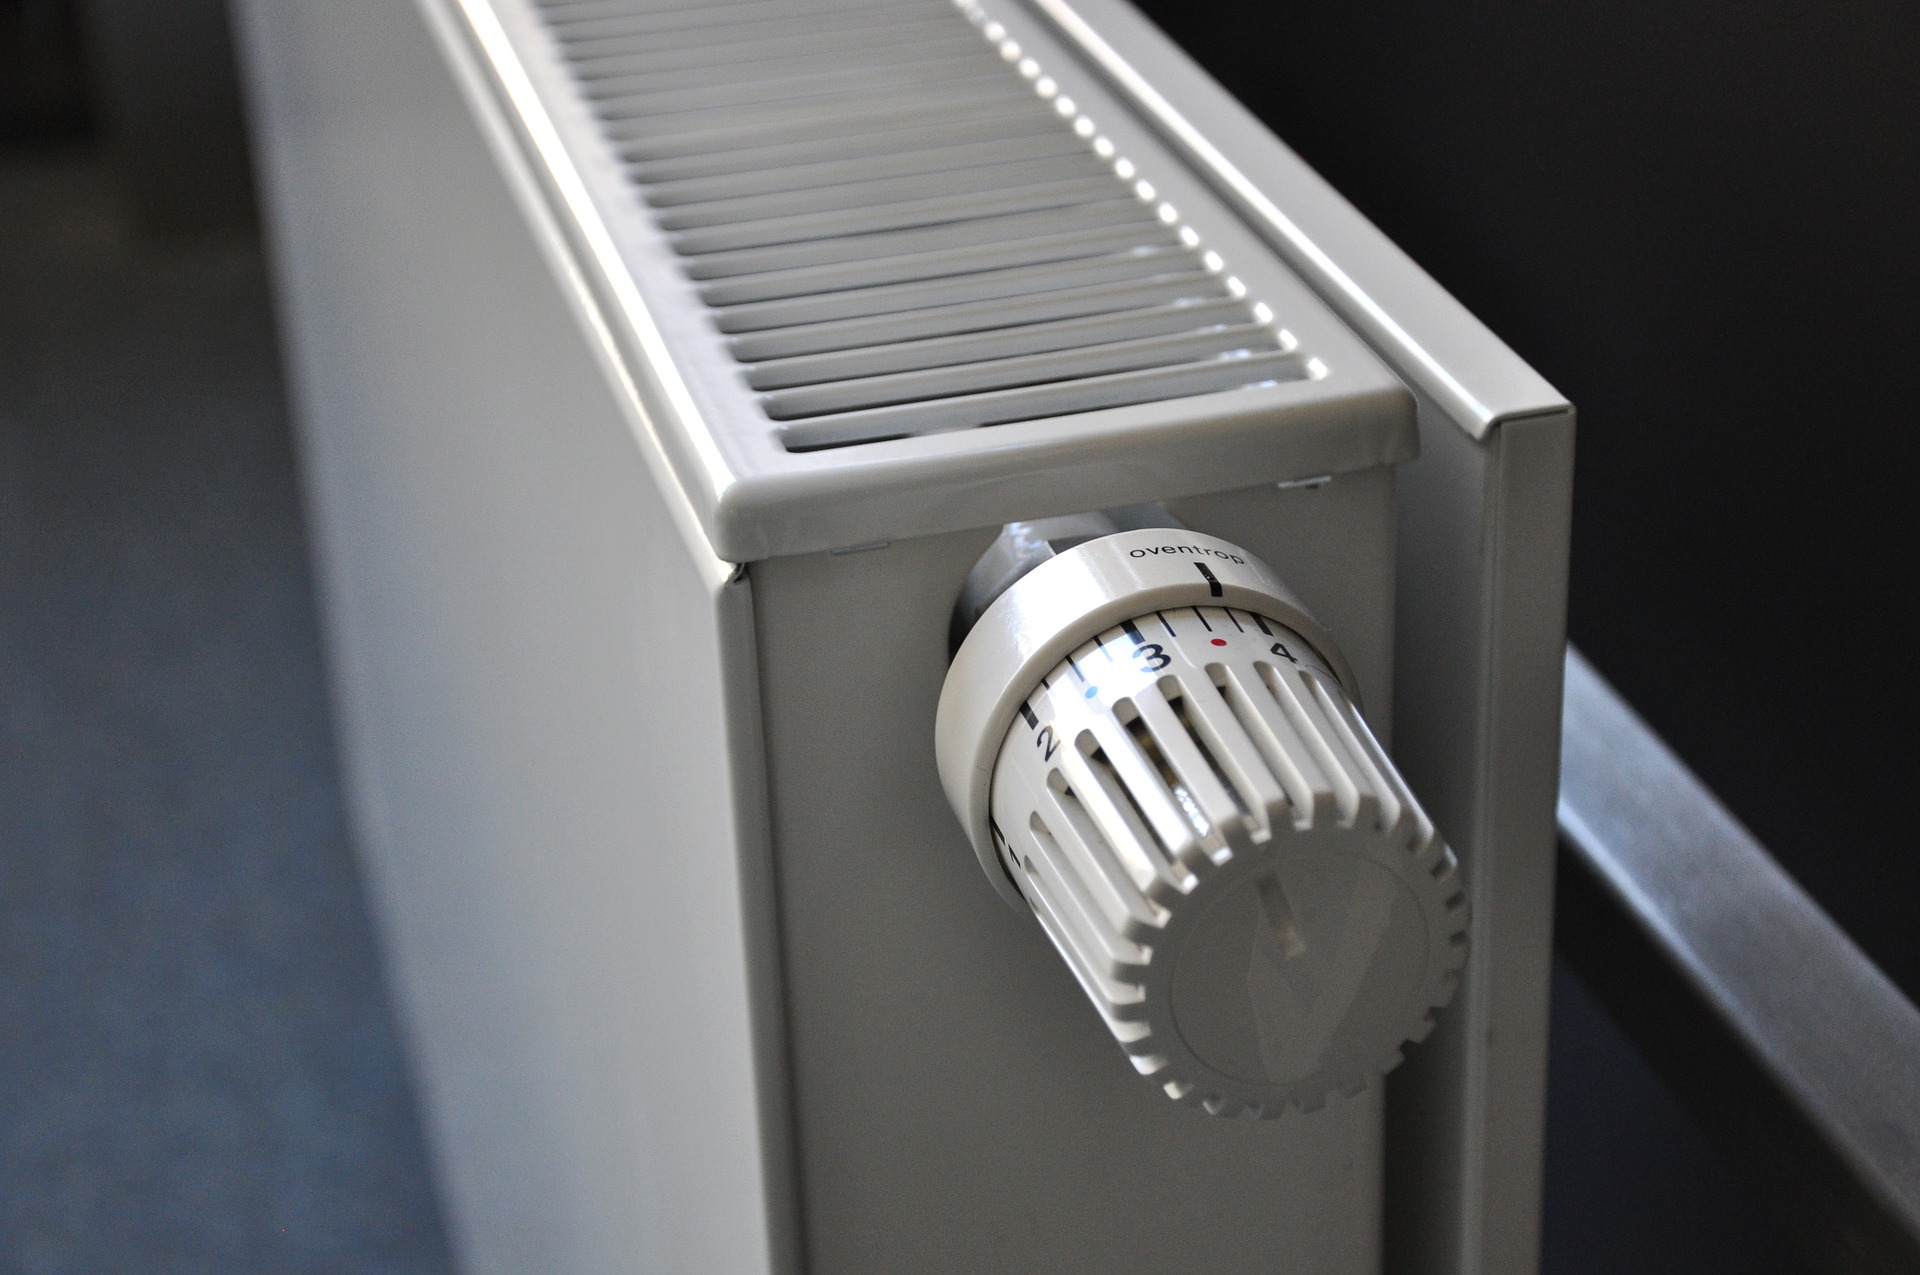 Image of a radiator